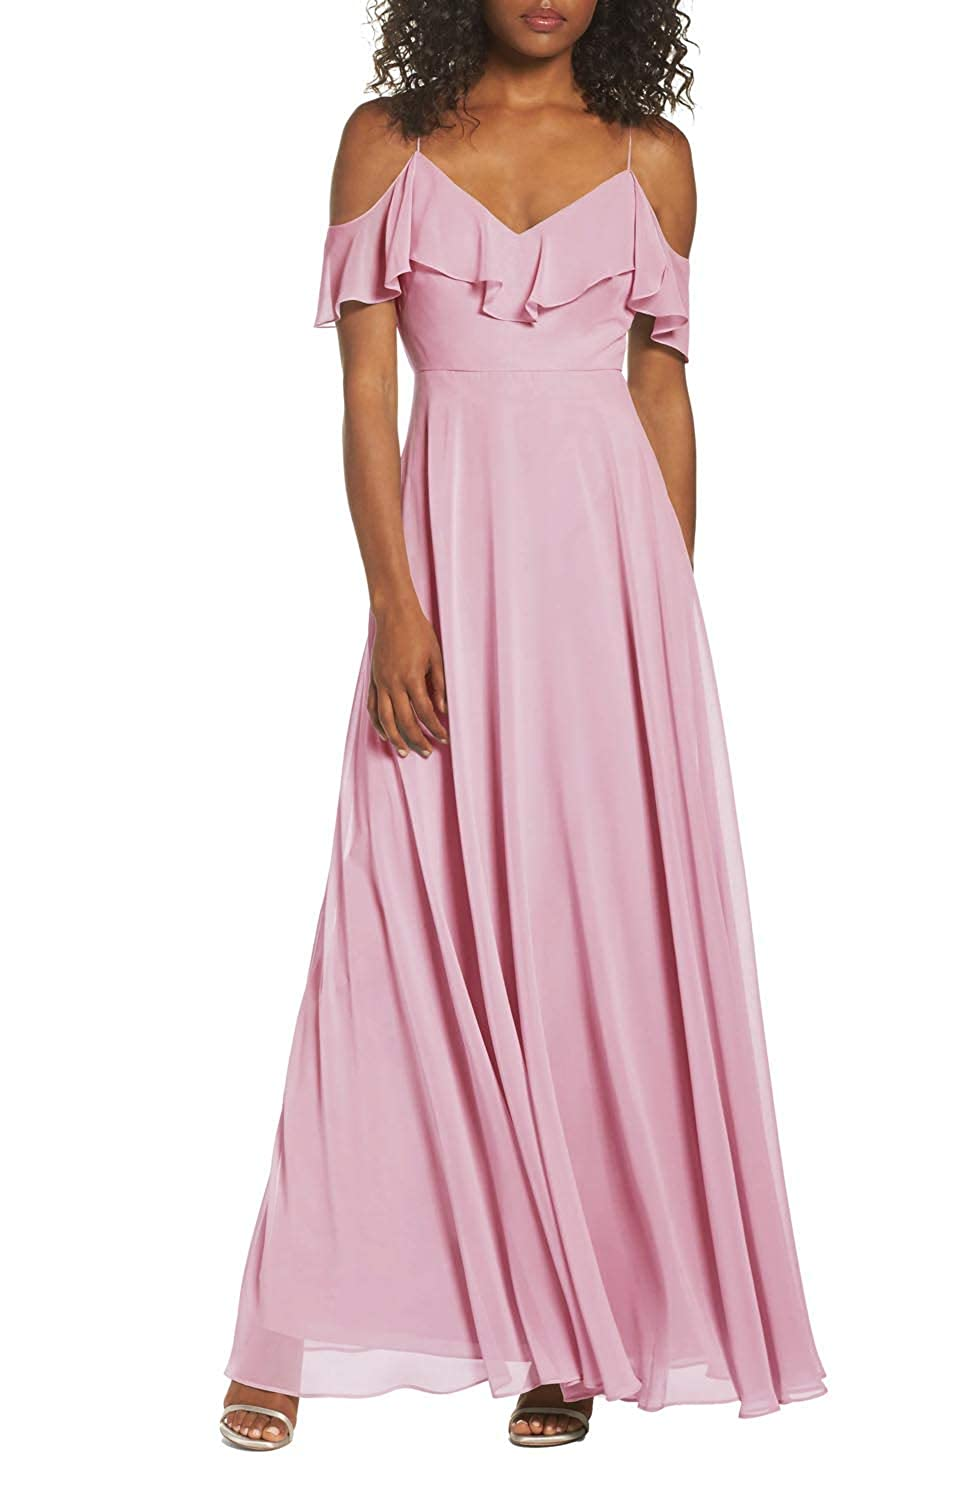 Fairy Tale FeiYueXinXing Women's V Neck Cold Shoulder Prom Gown Long Bridesmaid Dresses Evening Skirt